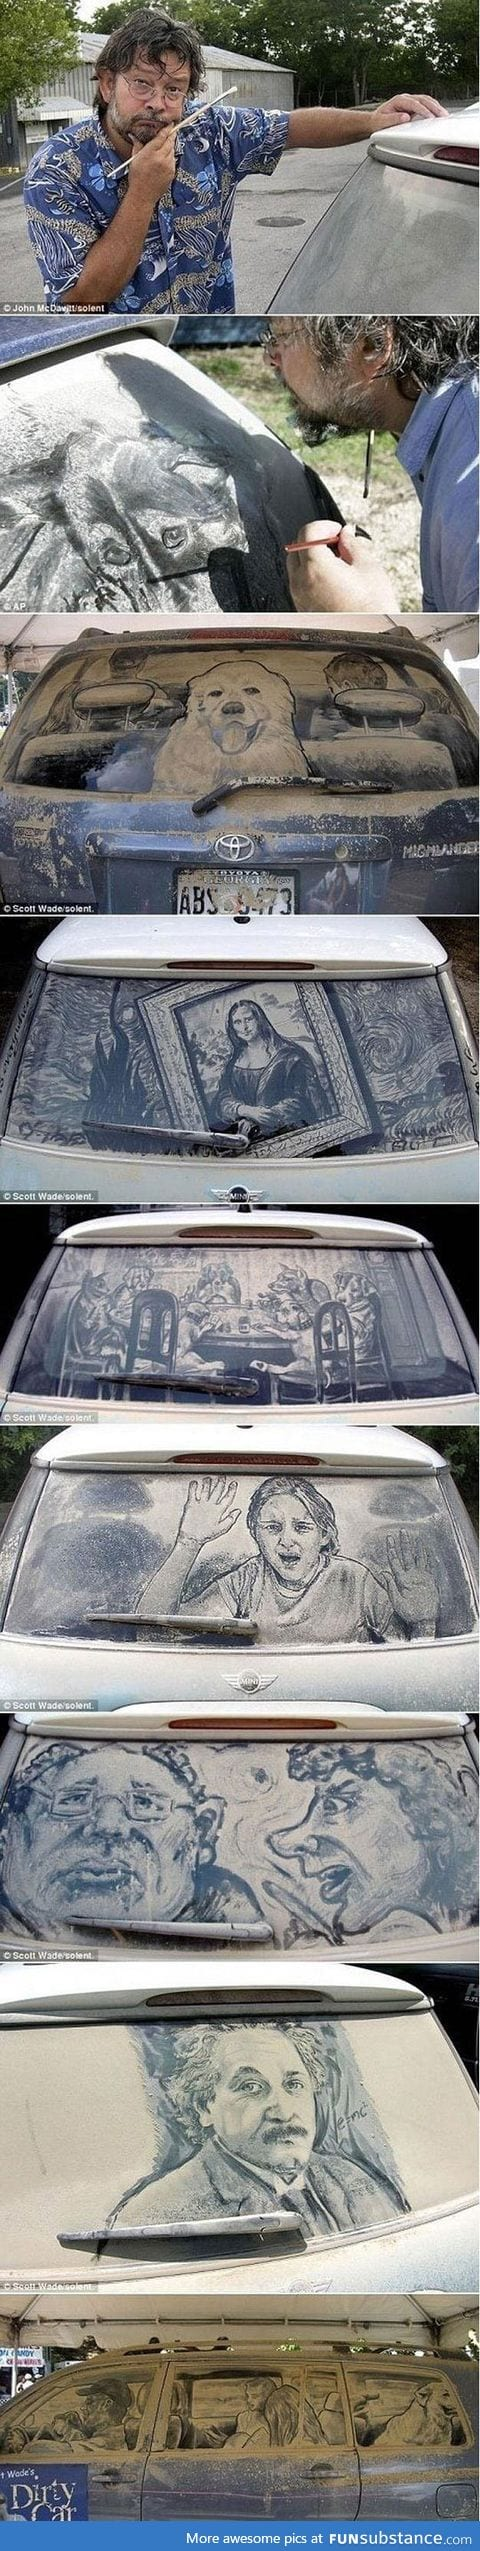 Best thing to do to a dirty car window